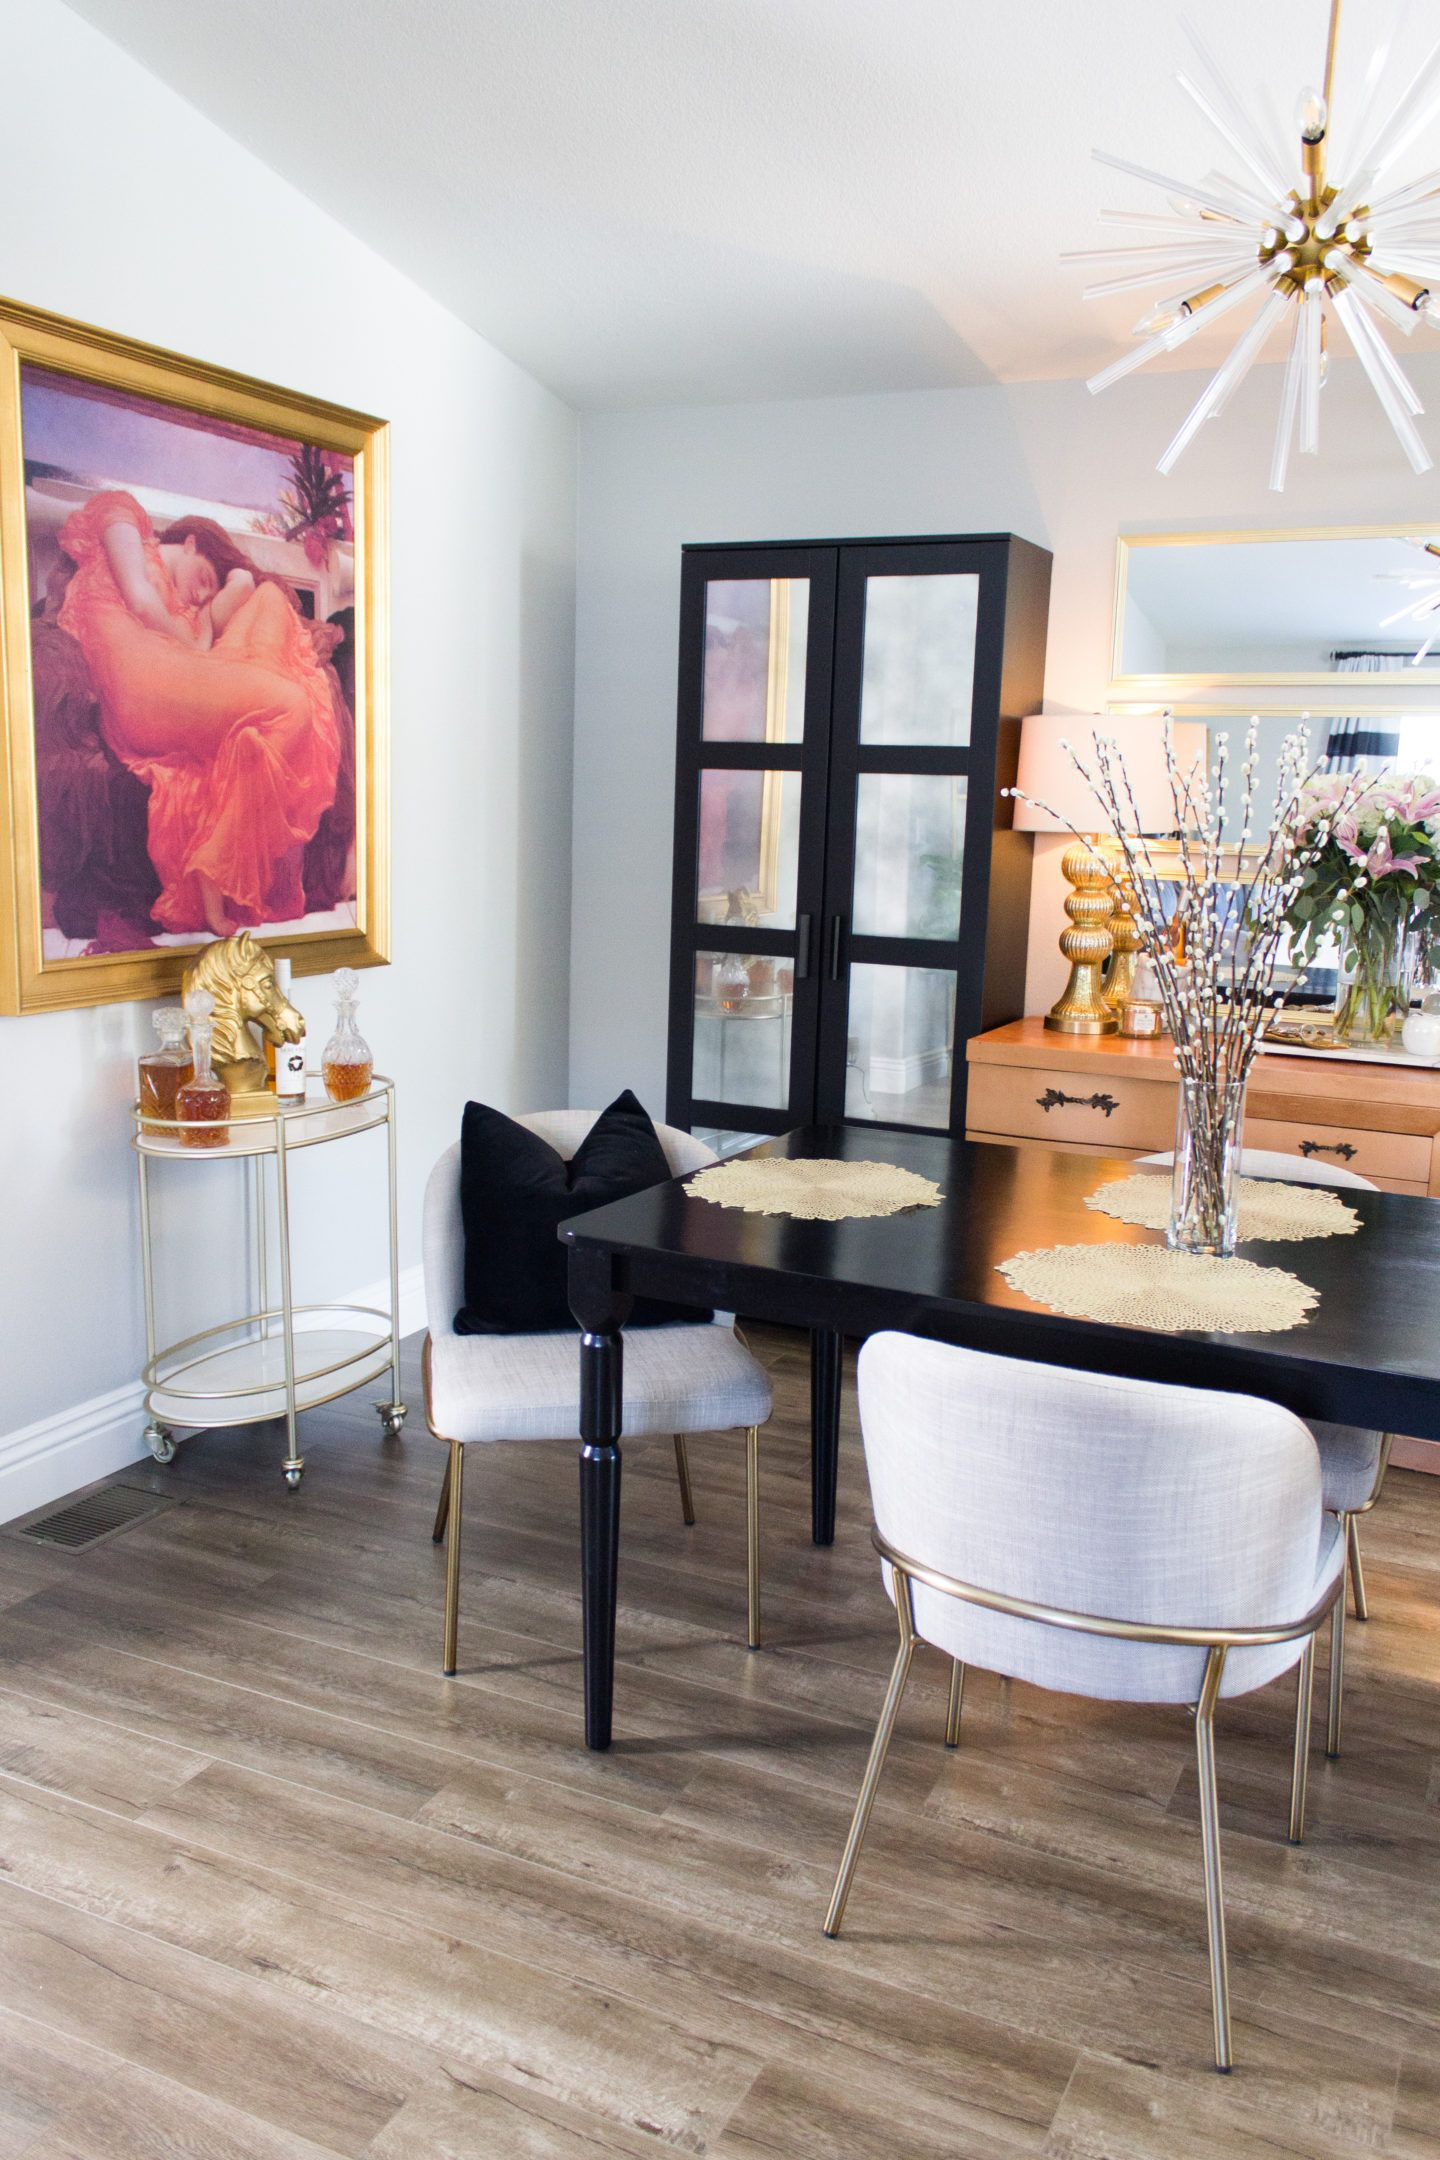 Dining Room Refresh with @Joybird #diningroomdecor #home #design